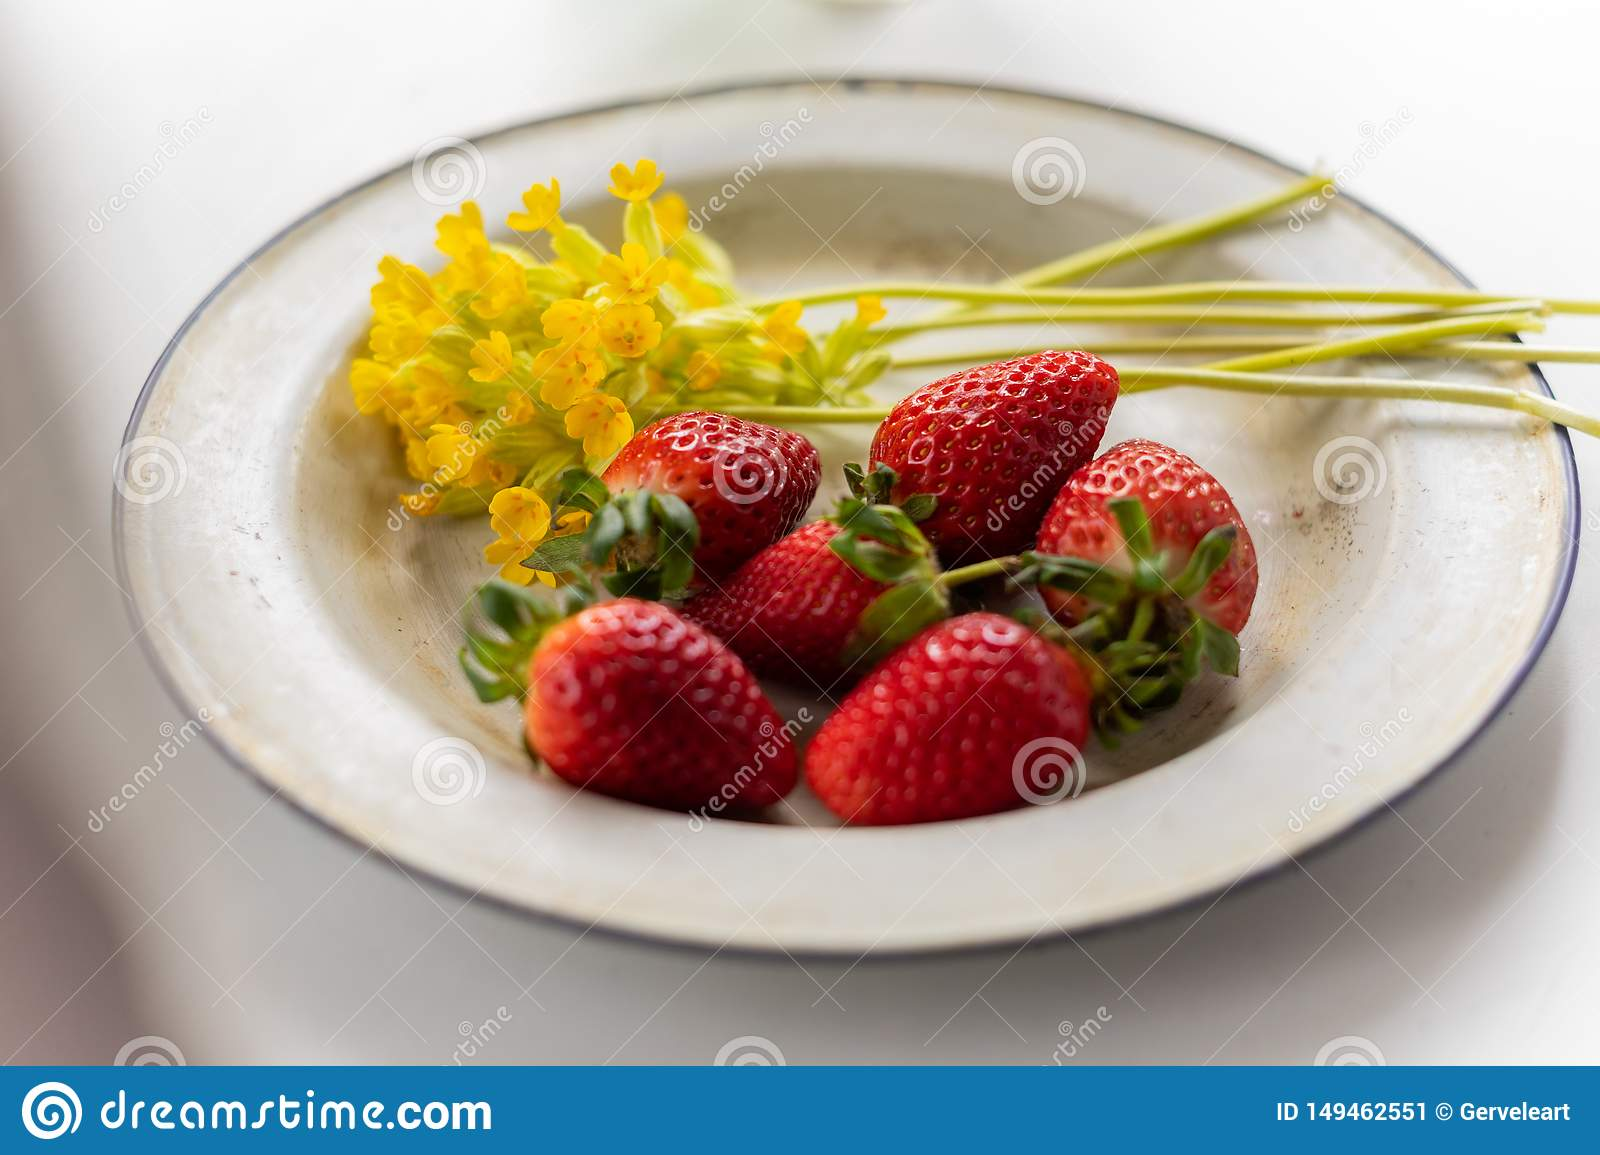 Enameled vintage plate with ripe strawberries and yellow flowers